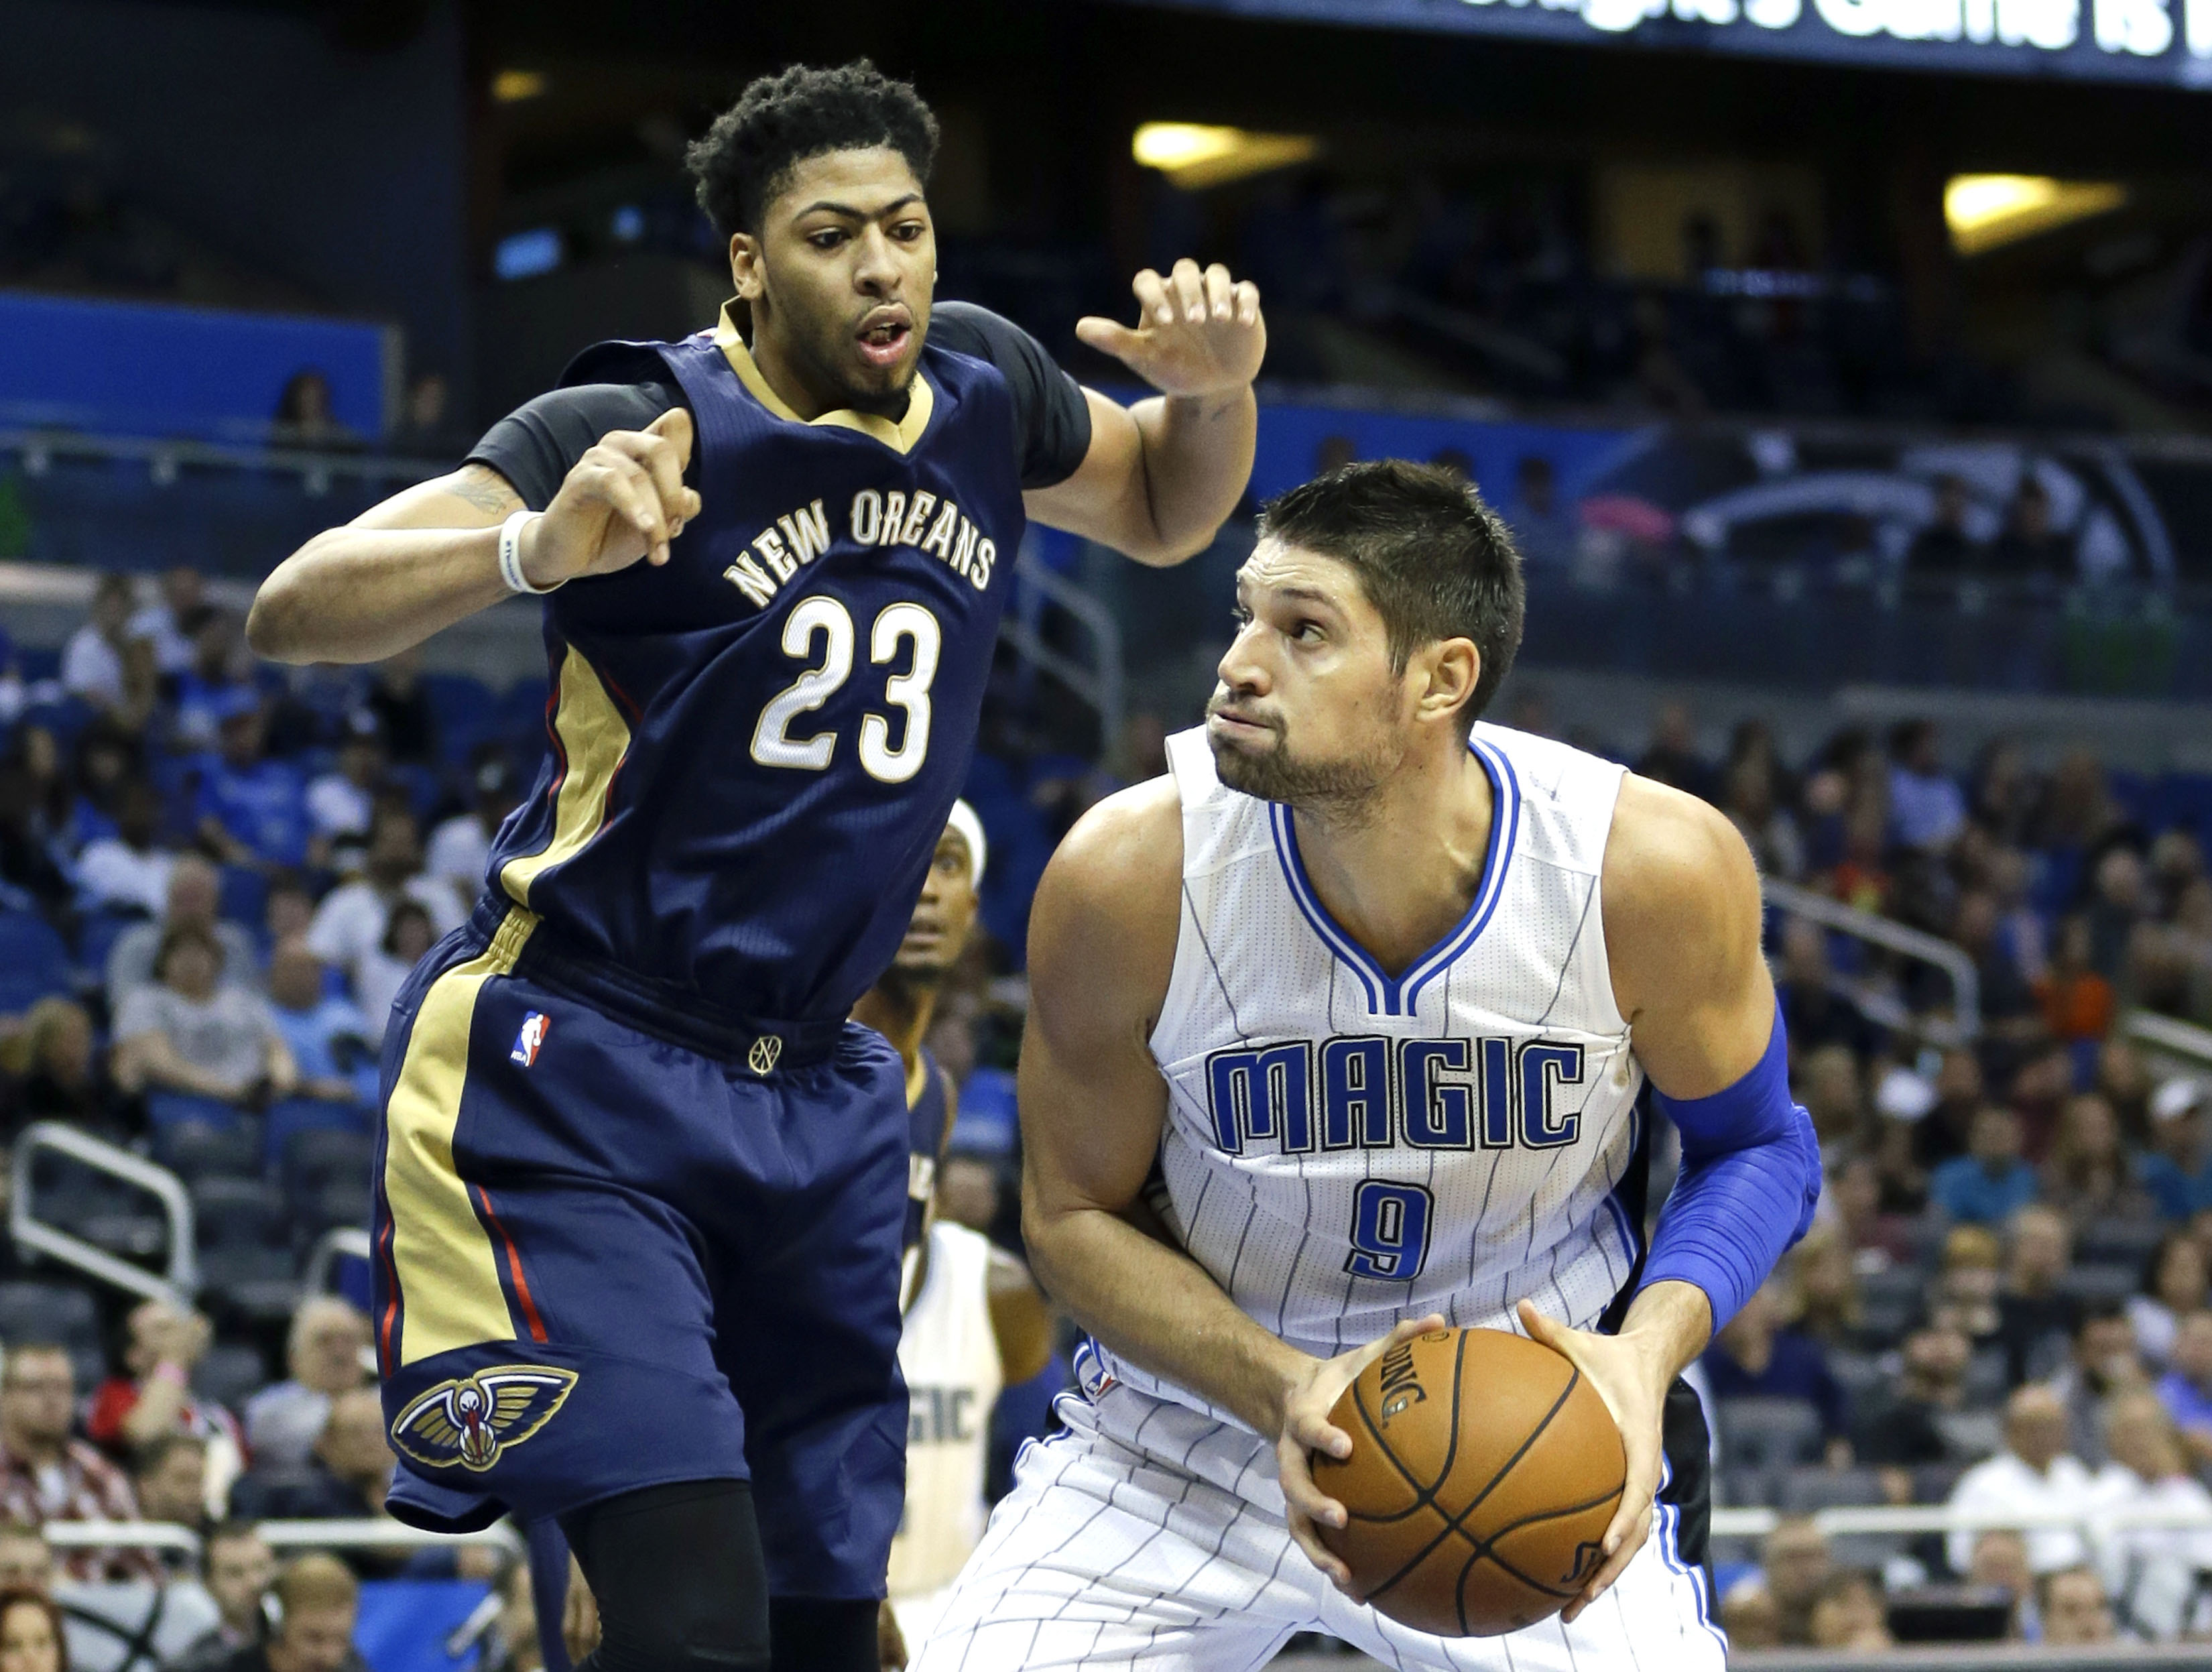 Orlando Magic's Nikola Vucevic (9) looks for a shot as he is guarded by New Orleans Pelicans' Anthony Davis (23) during the second half of an NBA preseason basketball game, Wednesday, Oct. 21, 2015, in Orlando, Fla. Orlando won in overtime 110-107. (AP Ph